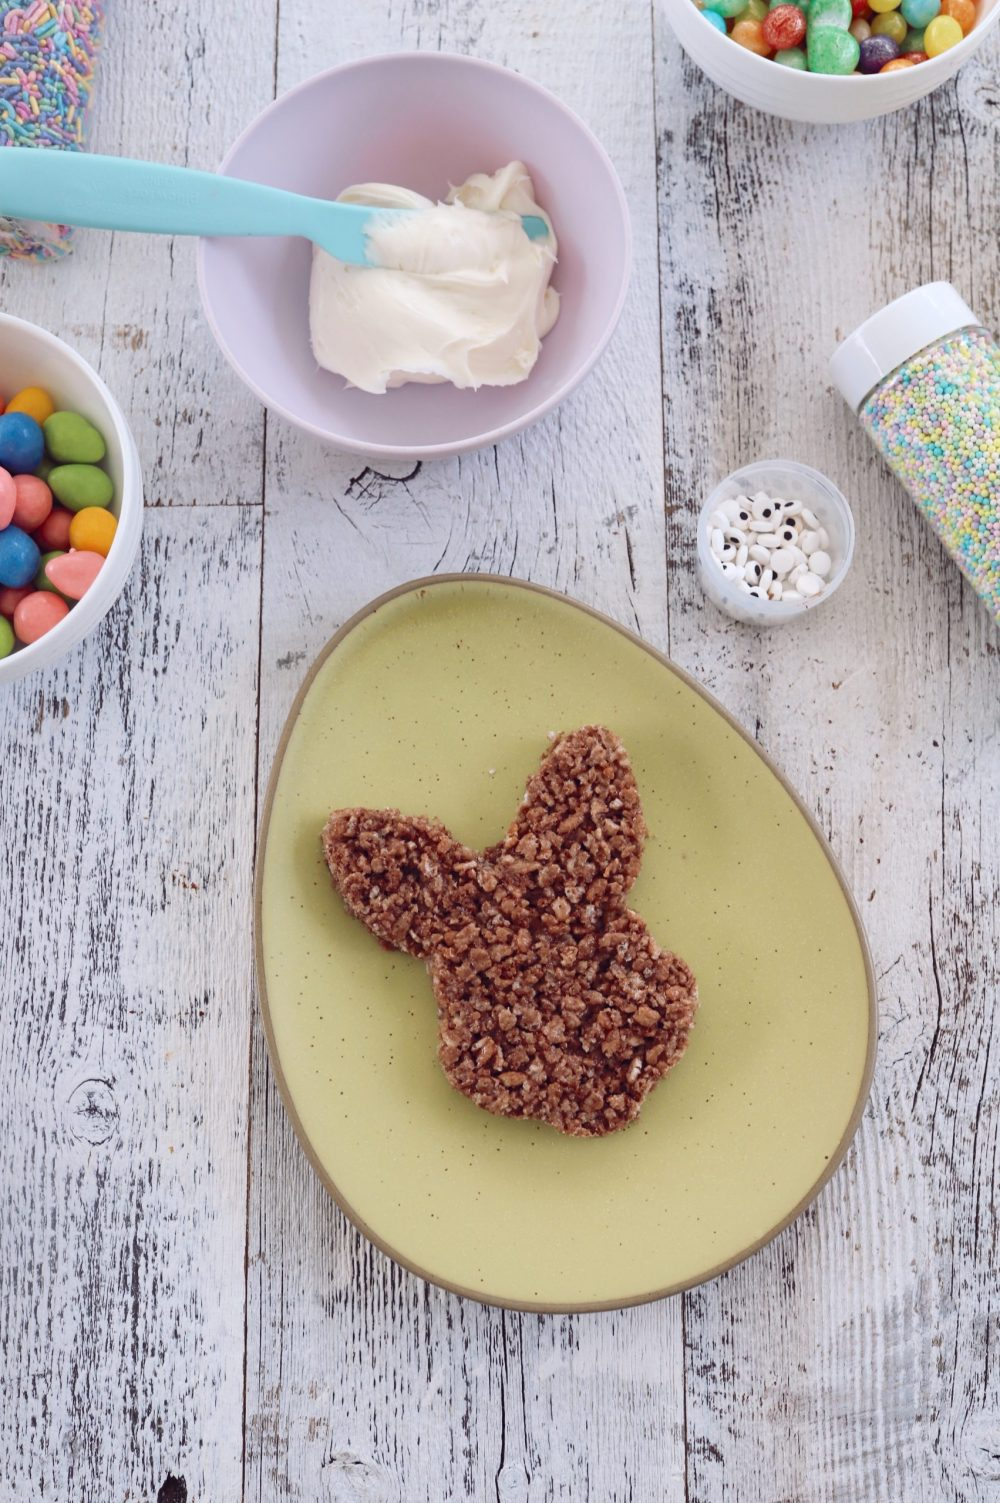 Simple Chocolate Easter Bunny Rice Krispies treats from top lifestyle blogger Tabitha Blue of Fresh Mommy Blog |Chocolate Rice Krispies Treats by popular Florida lifestyle blog, Fresh Mommy Blog: image of Easter Bunny shaped chocolate Rice Krispies treats, boxes of Cocoa Krispies in a Publix reusable shopping bag, a bowl of white frosting, pastel sprinkles, and white ceramic bowls filled with egg shaped jelly beans.